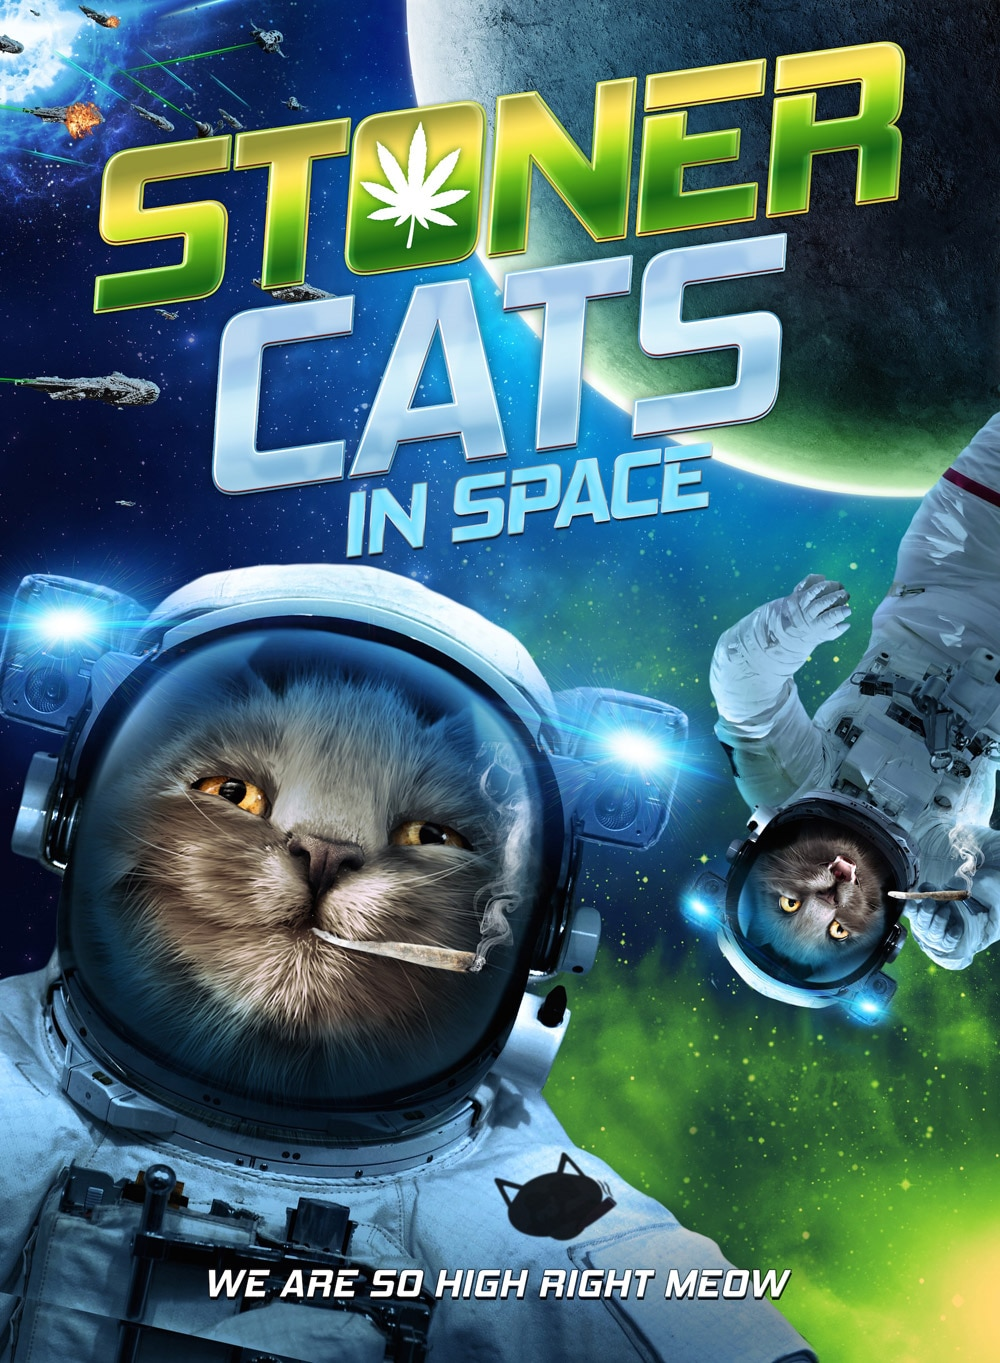 stoner cats in space - Stoner Cats in Space Getting High With Your Help!